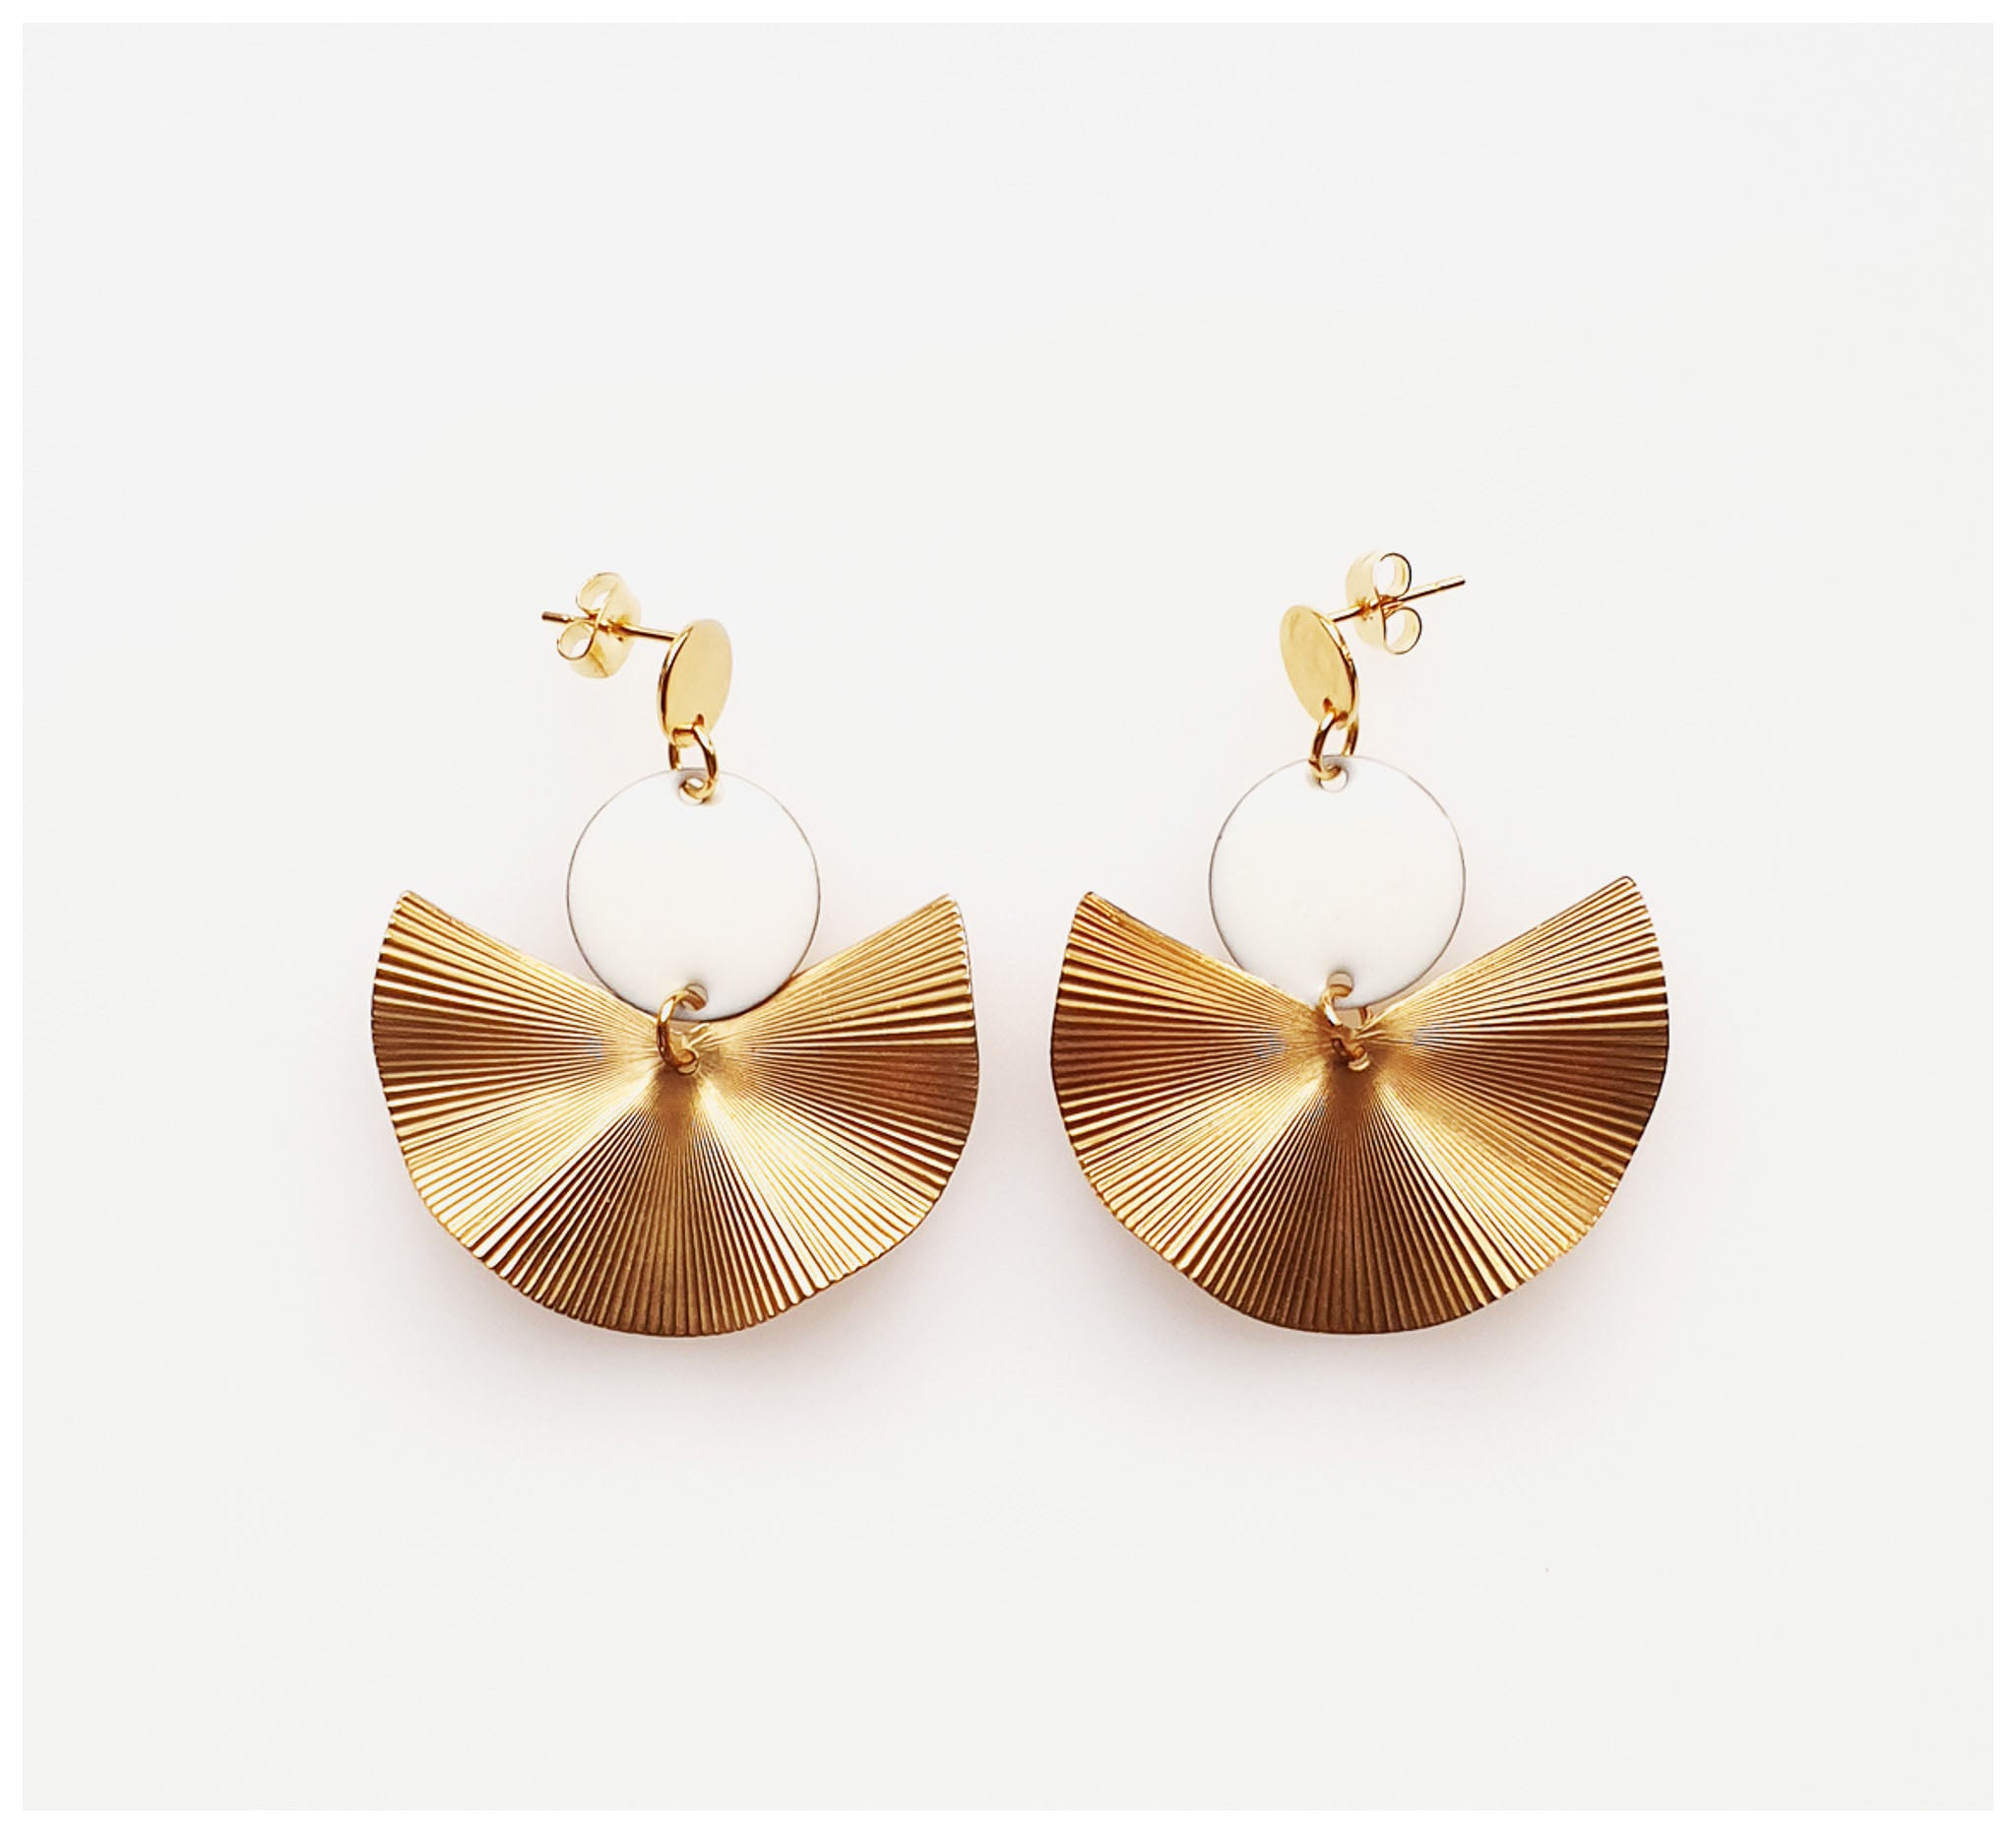 Middle Child - Munroe Earrings - White